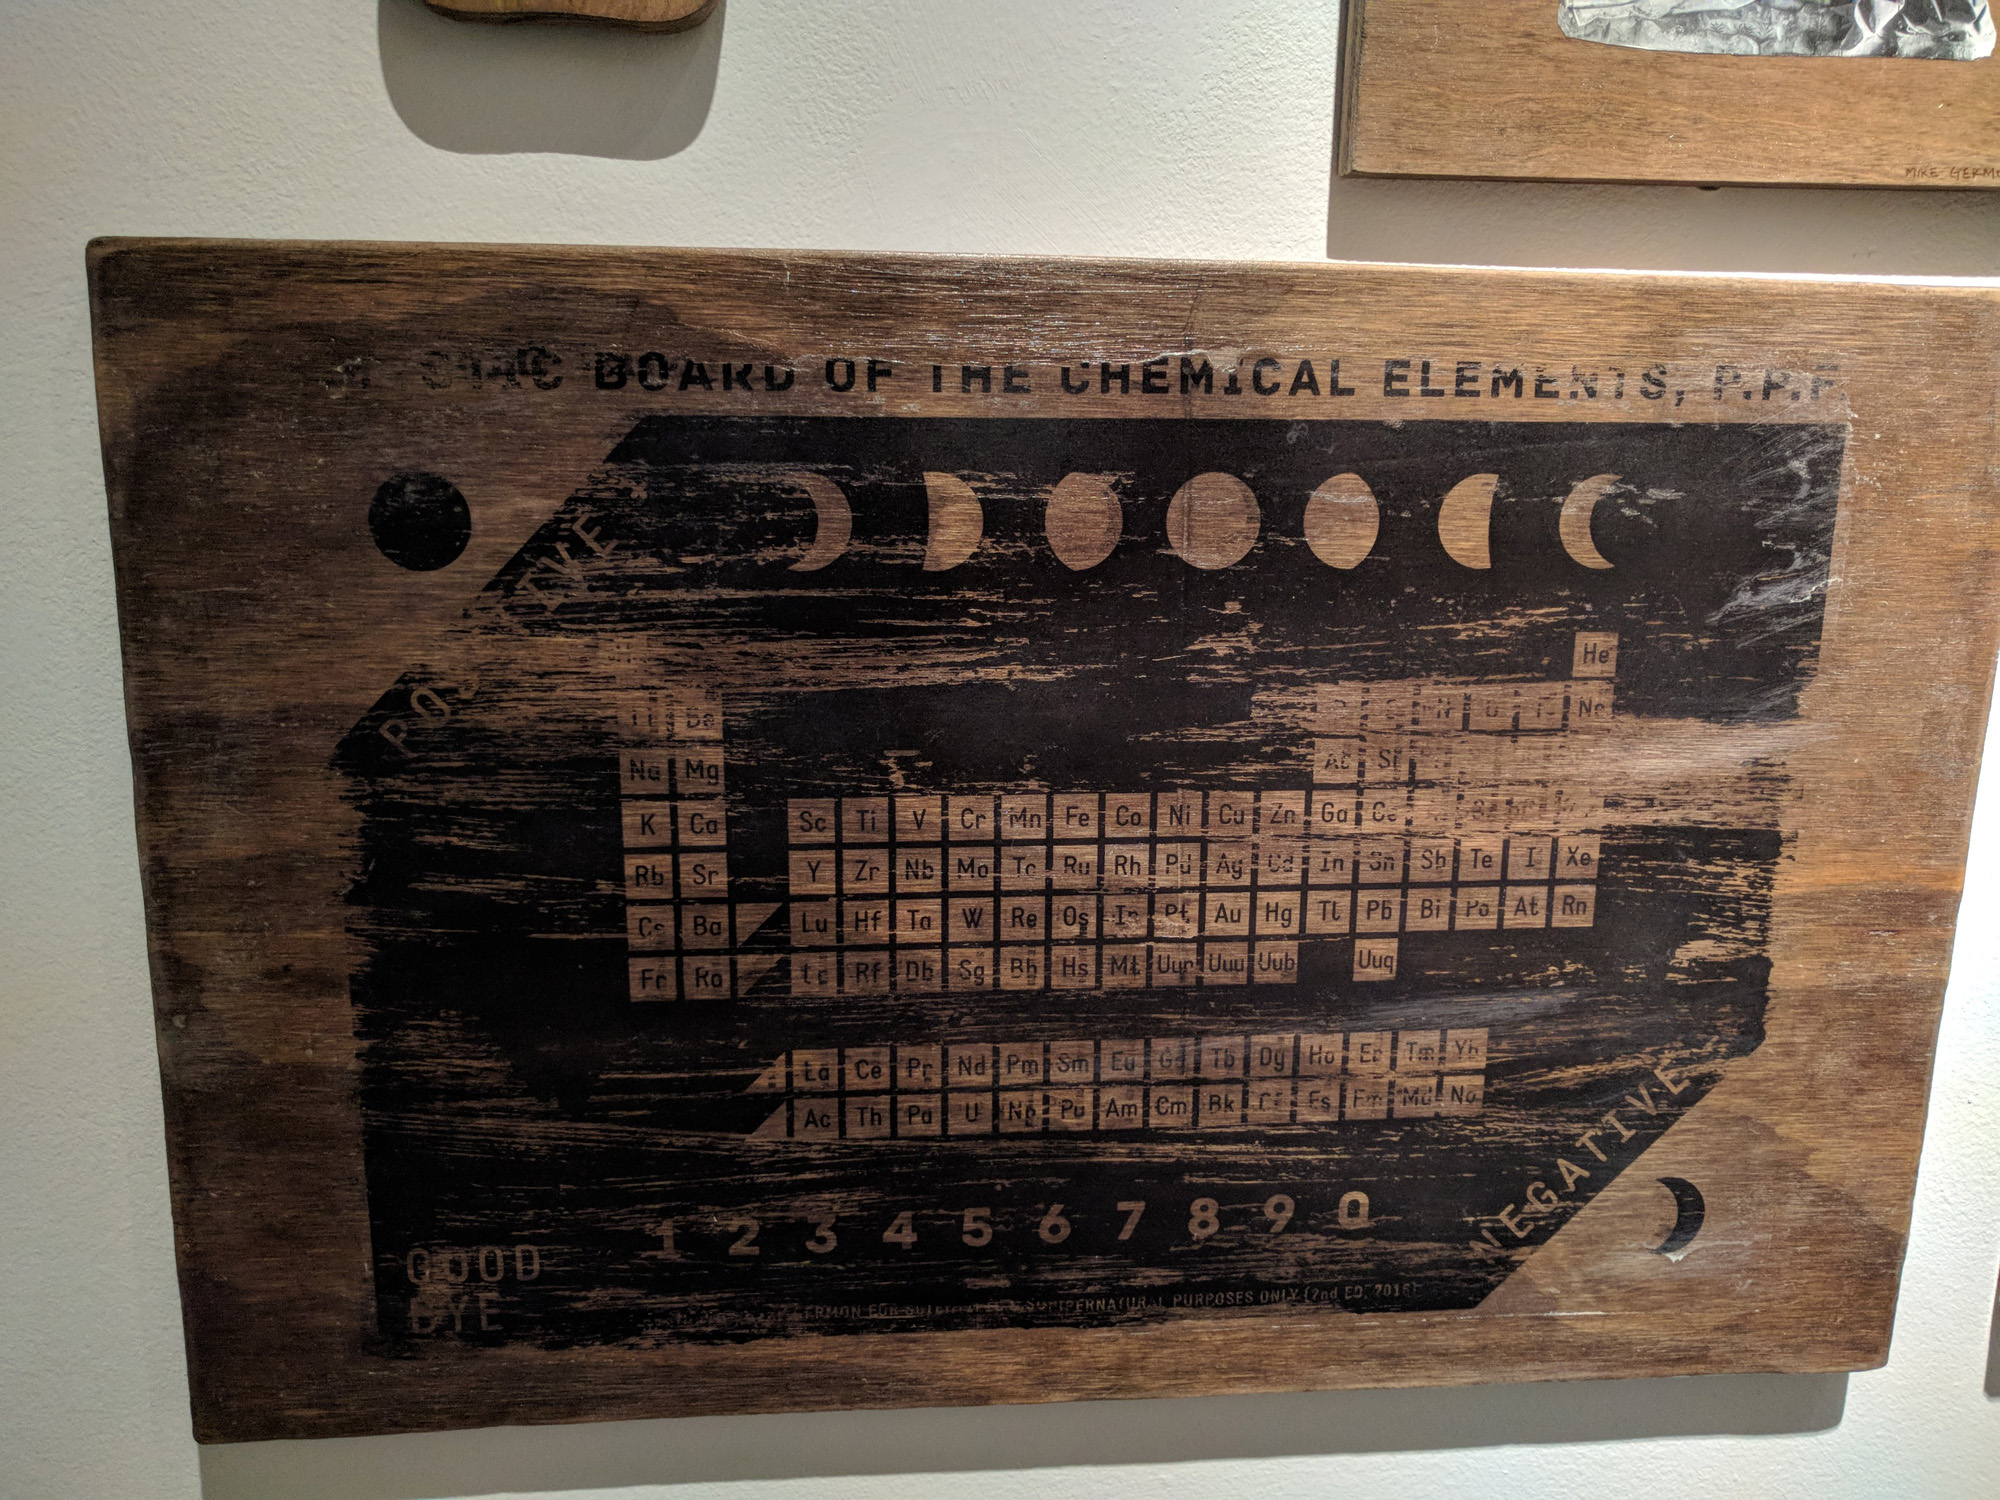 Mike Germon Mystic Board of the Chemical Elements transfer on wood 20 x 13 inches MGE 001G